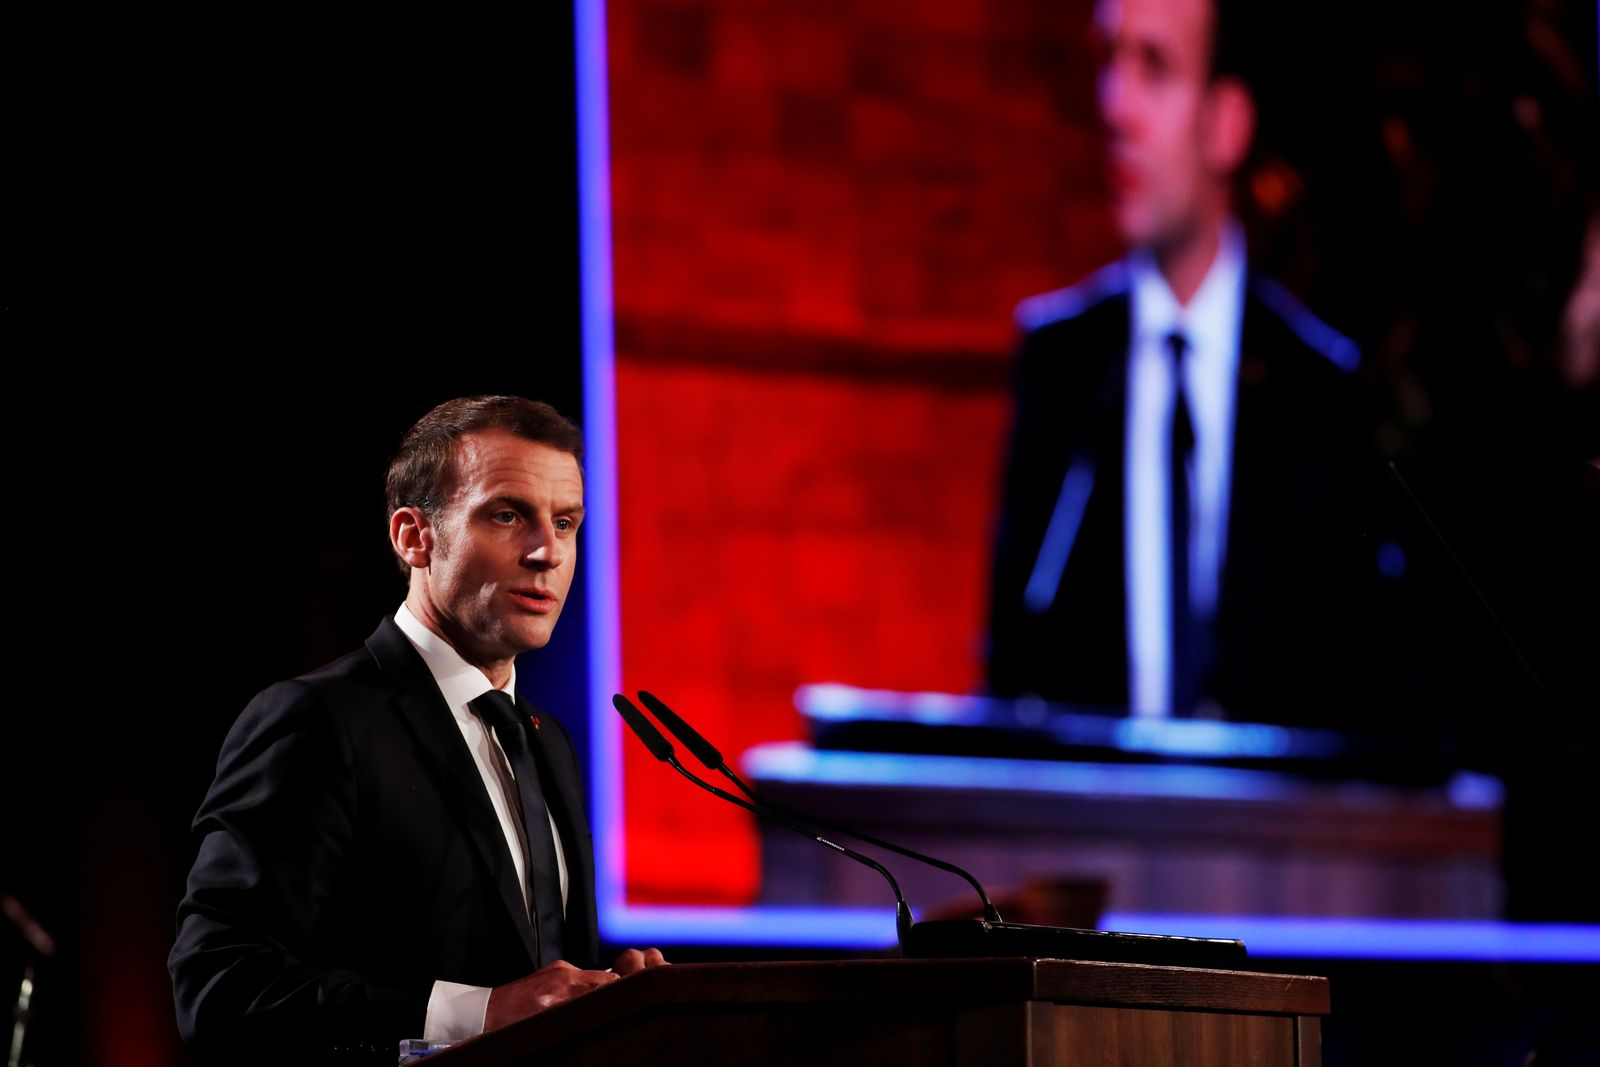 French President Emmanuel Macron speaks at the World Holocaust Forum marking 75 years since the liberation of the Nazi extermination camp Auschwitz, at Yad Vashem Holocaust memorial centre in Jerusalem